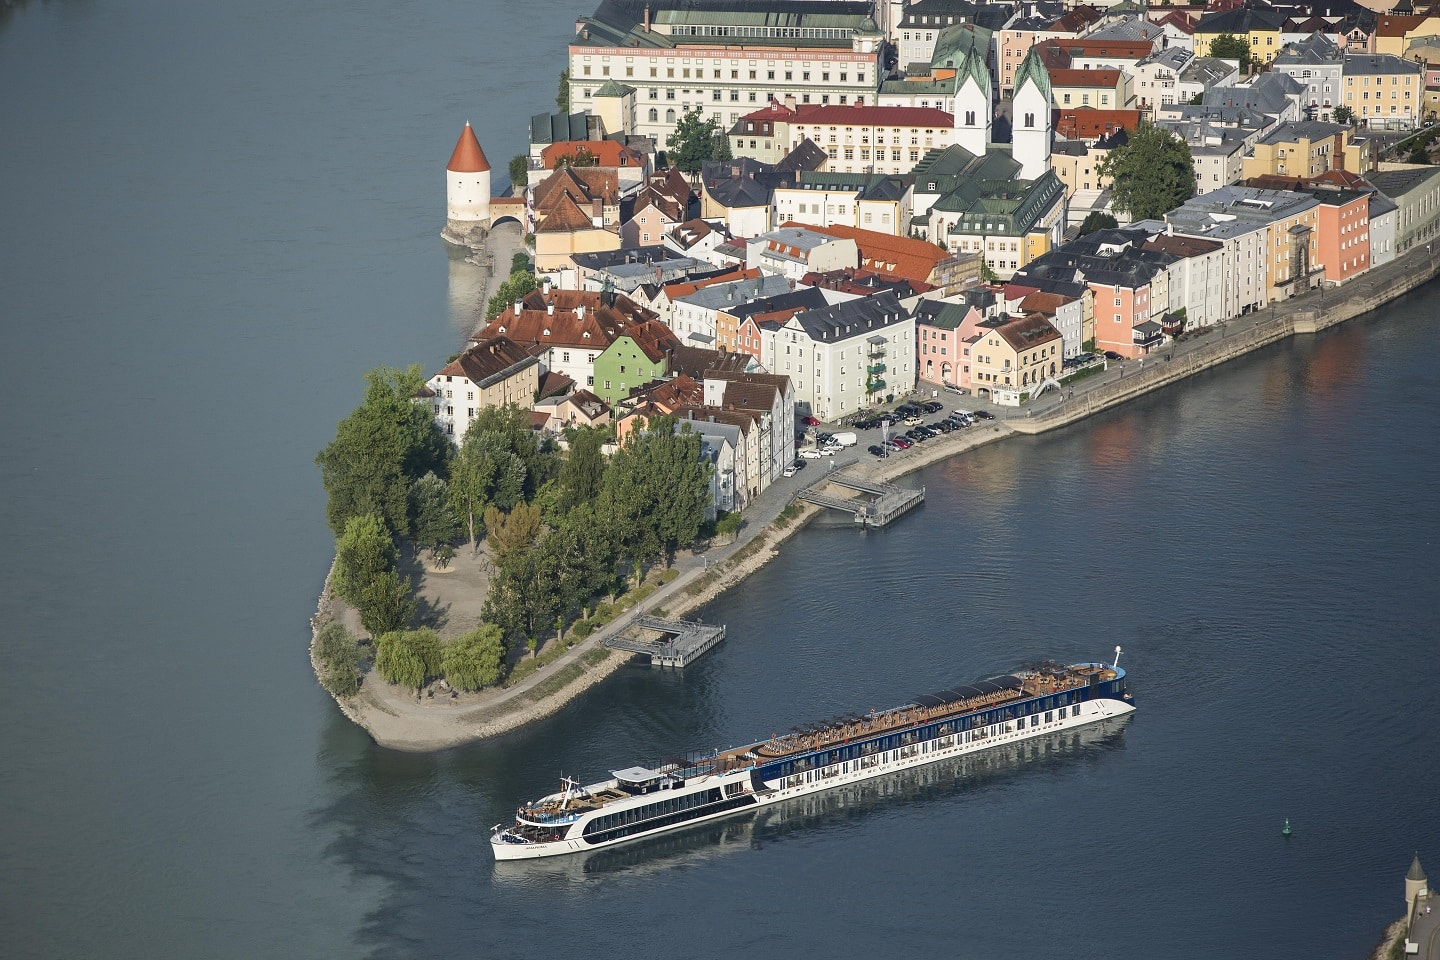 AmaWaterways river cruise AmaPrima in Passau, the three river city in Germany, on the Danube, luxury group vacations